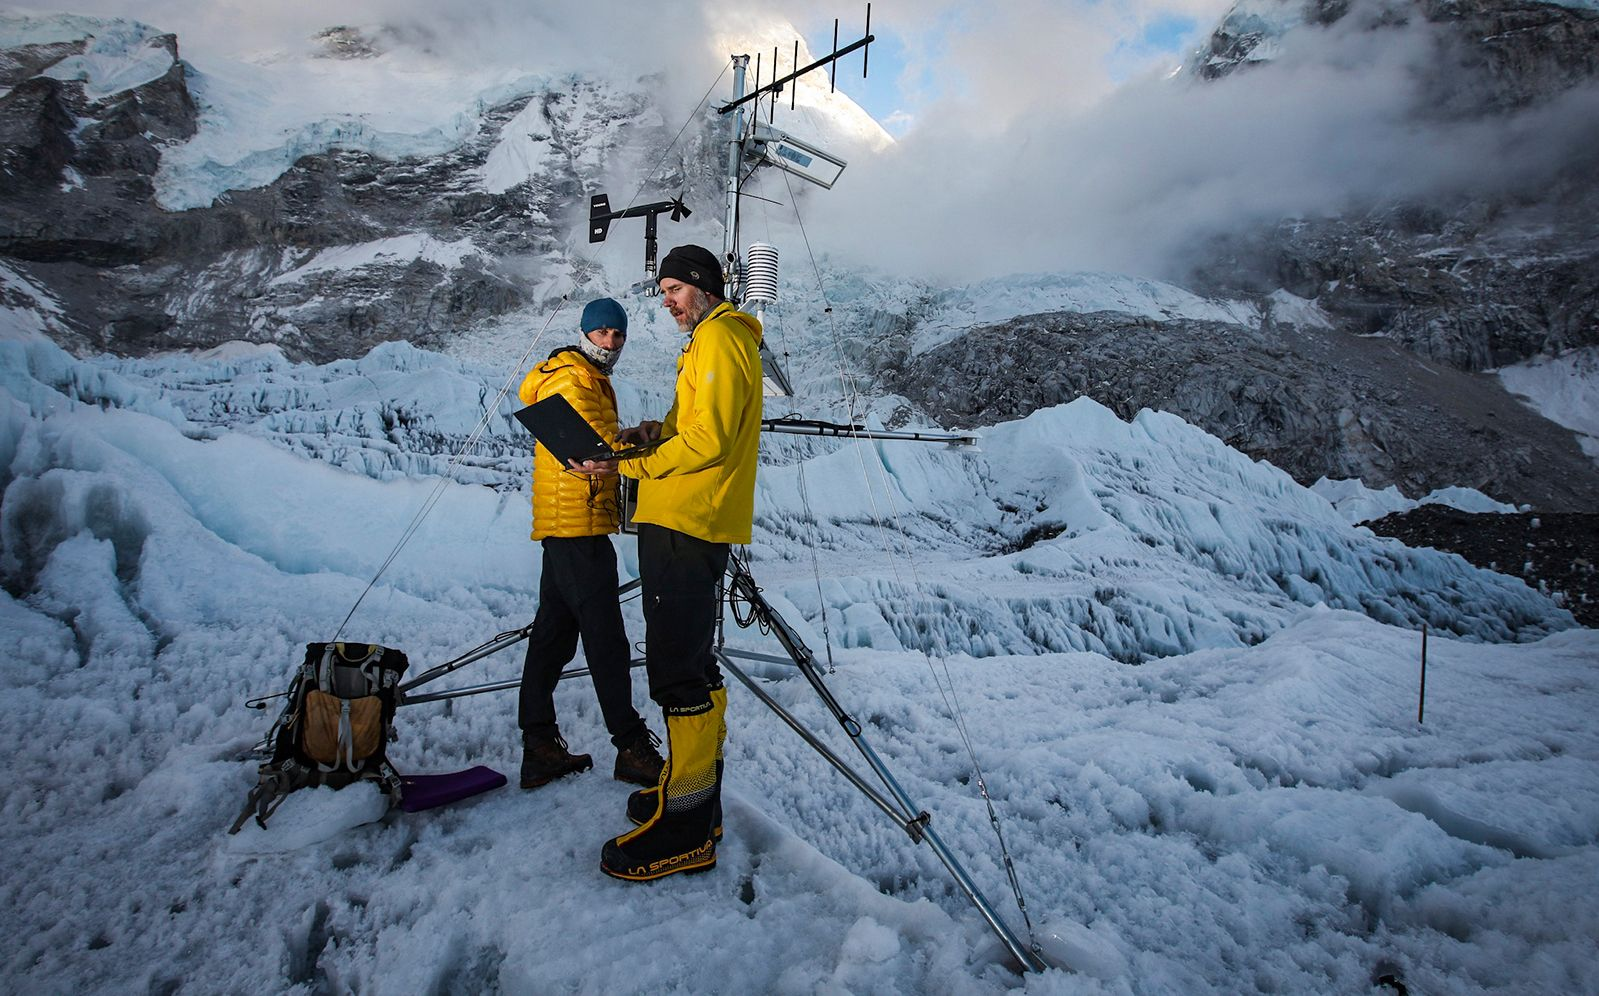 Rolex And National Geographic Society Install The World's Highest Weather Station On Mount Everest